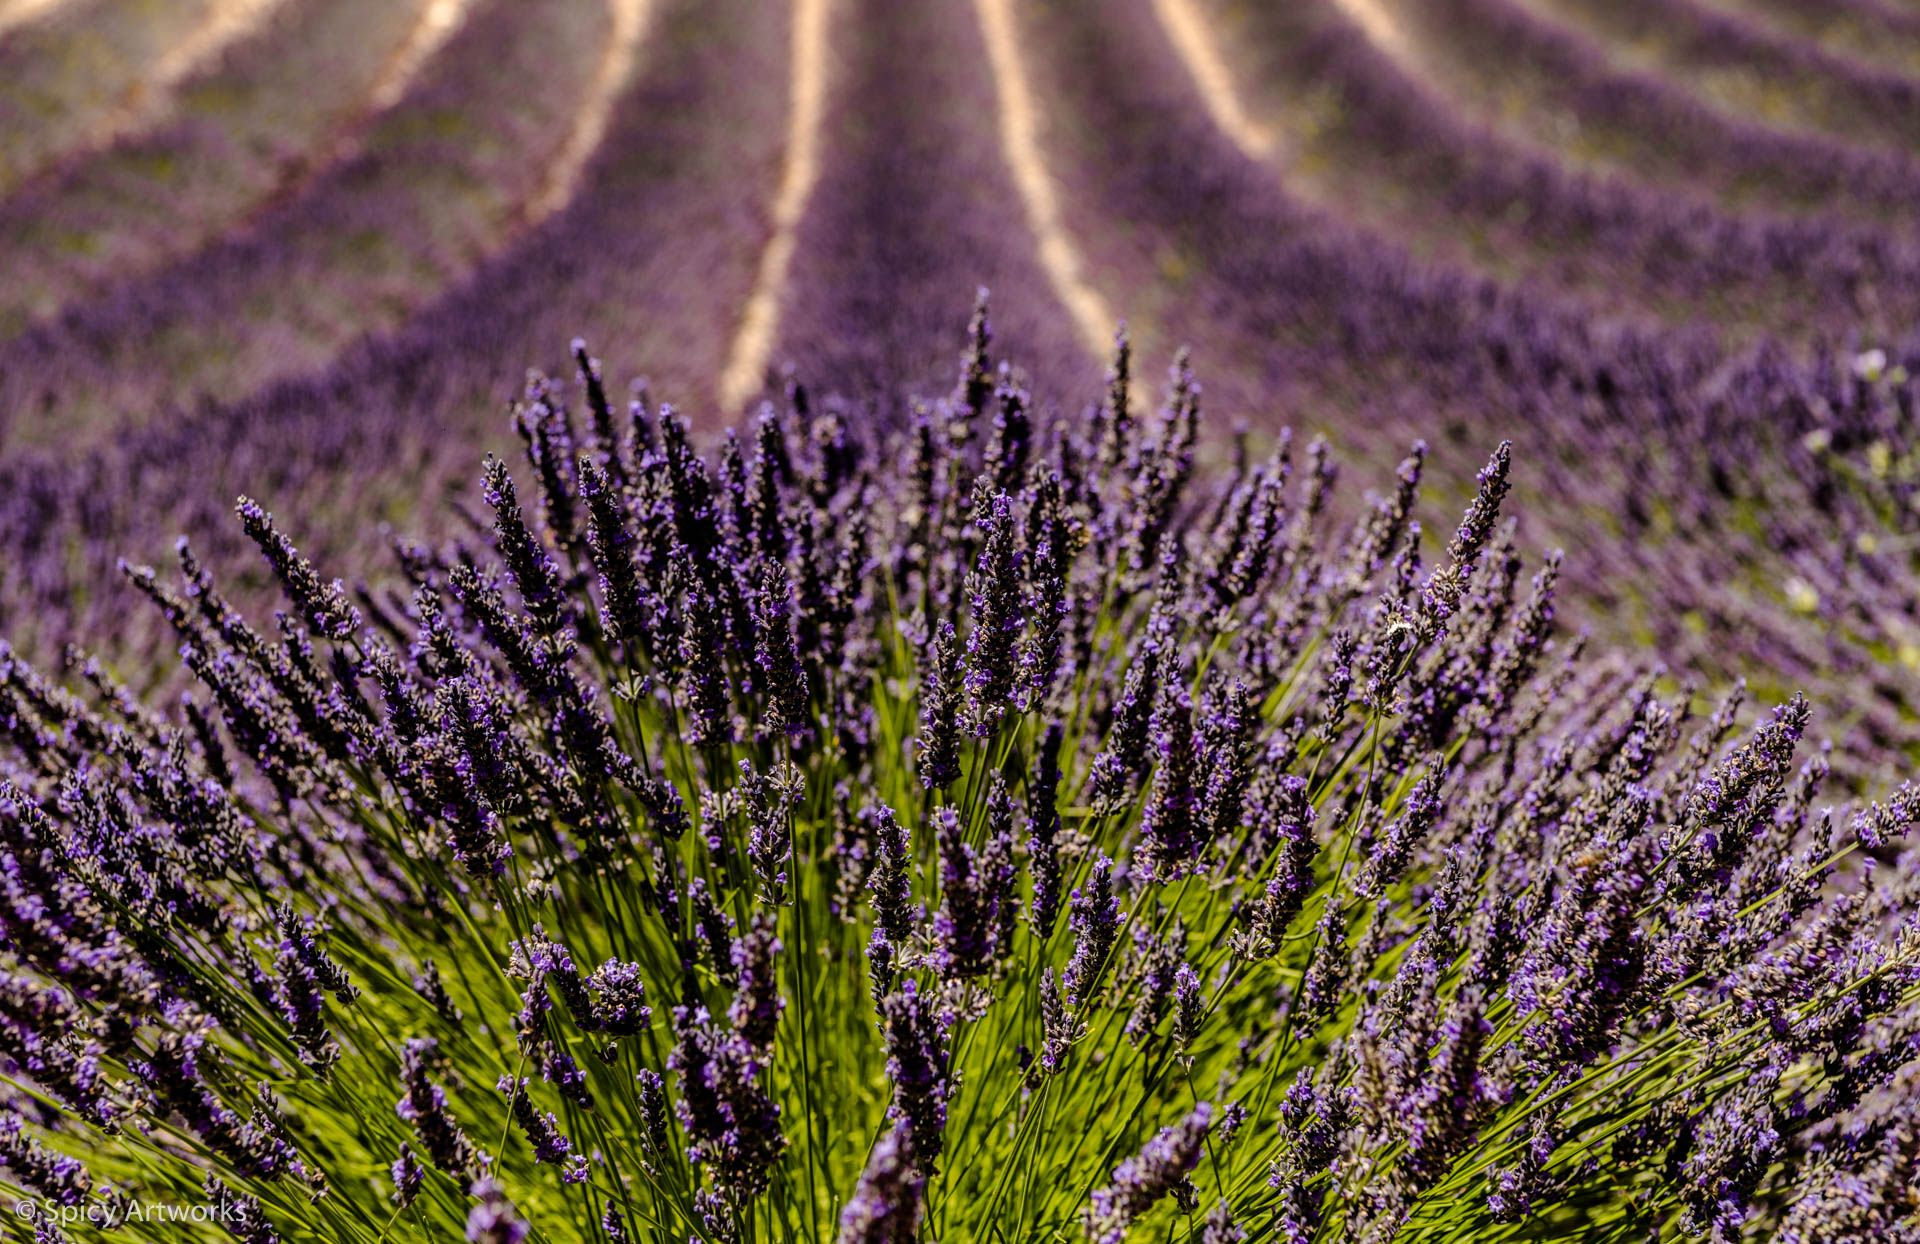 THE COLOR OF PURPLE OR THE PERFUME OF THE FIELDS - PROVENCE 2017 - Part 1: Between Lavender fields and vineyards